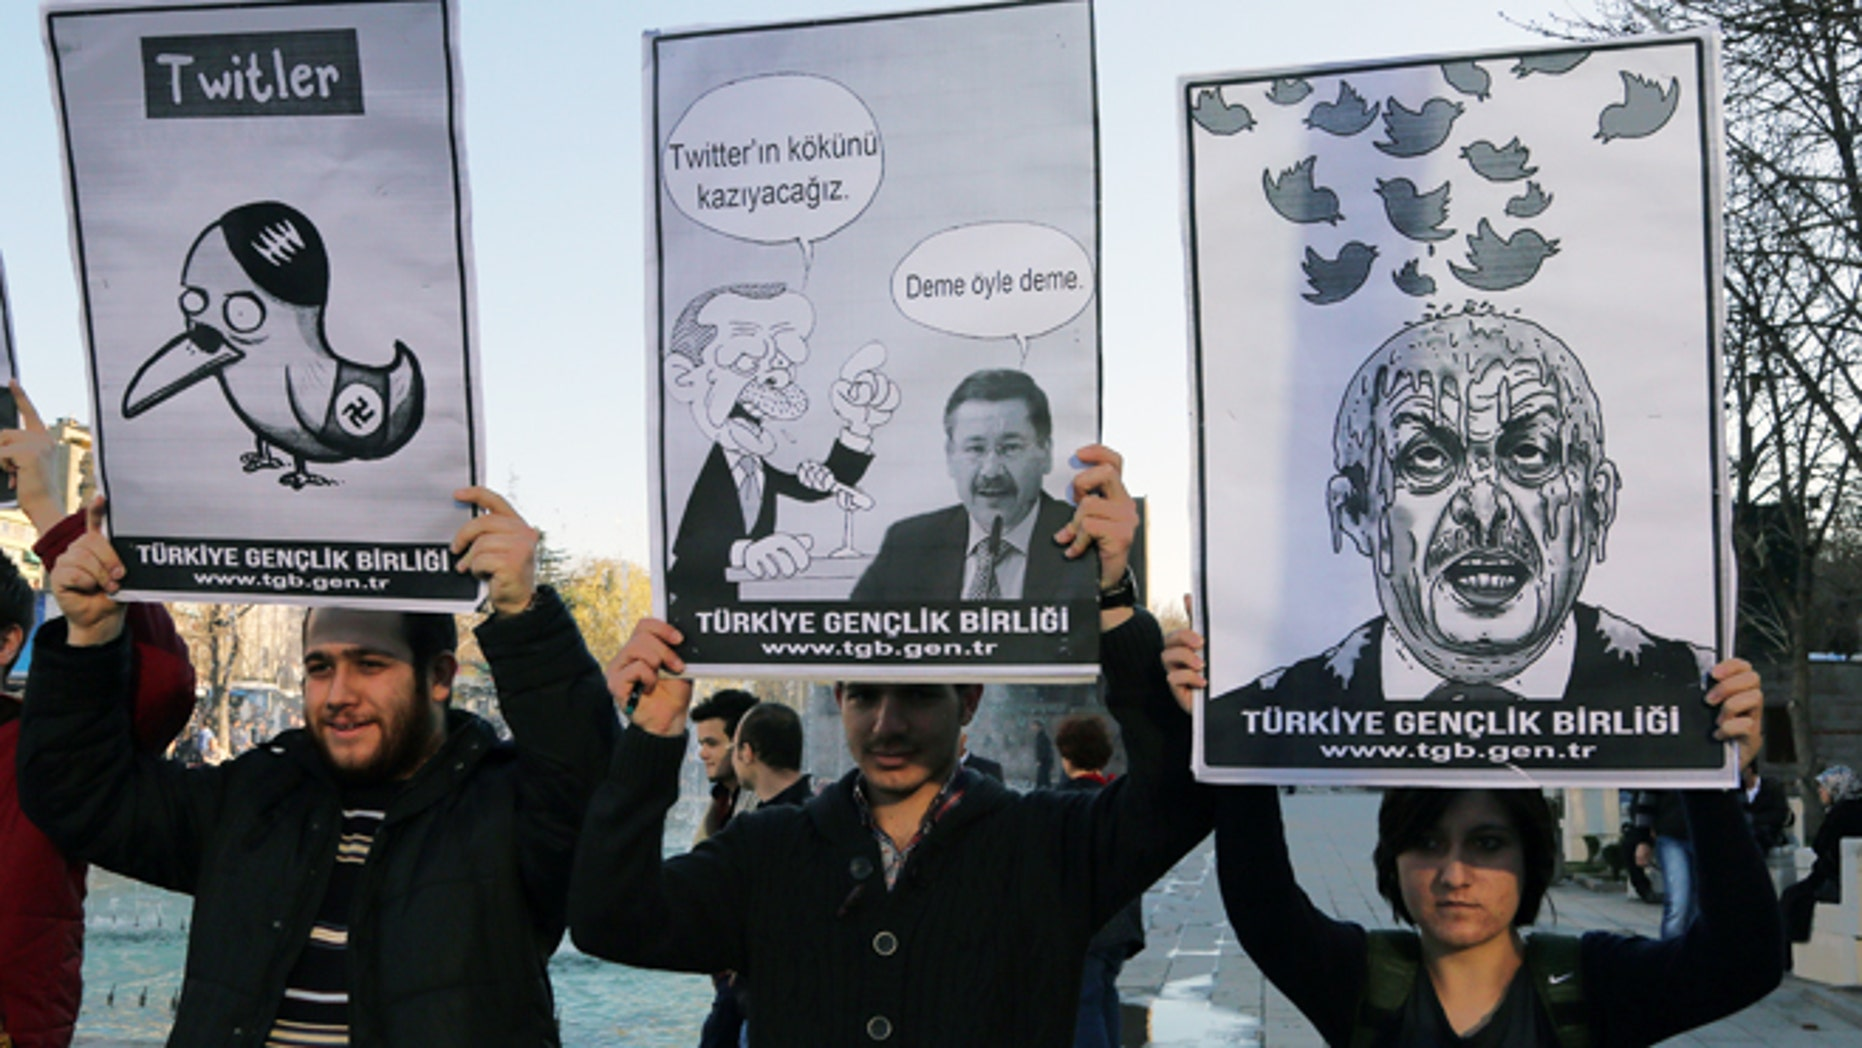 March 21, 2014: Members of the Turkish Youth Union hold cartoons depicting Turkey's Prime Minister Recep Tayyip Erdogan during a protest against a ban on Twitter, in Ankara, Turkey.